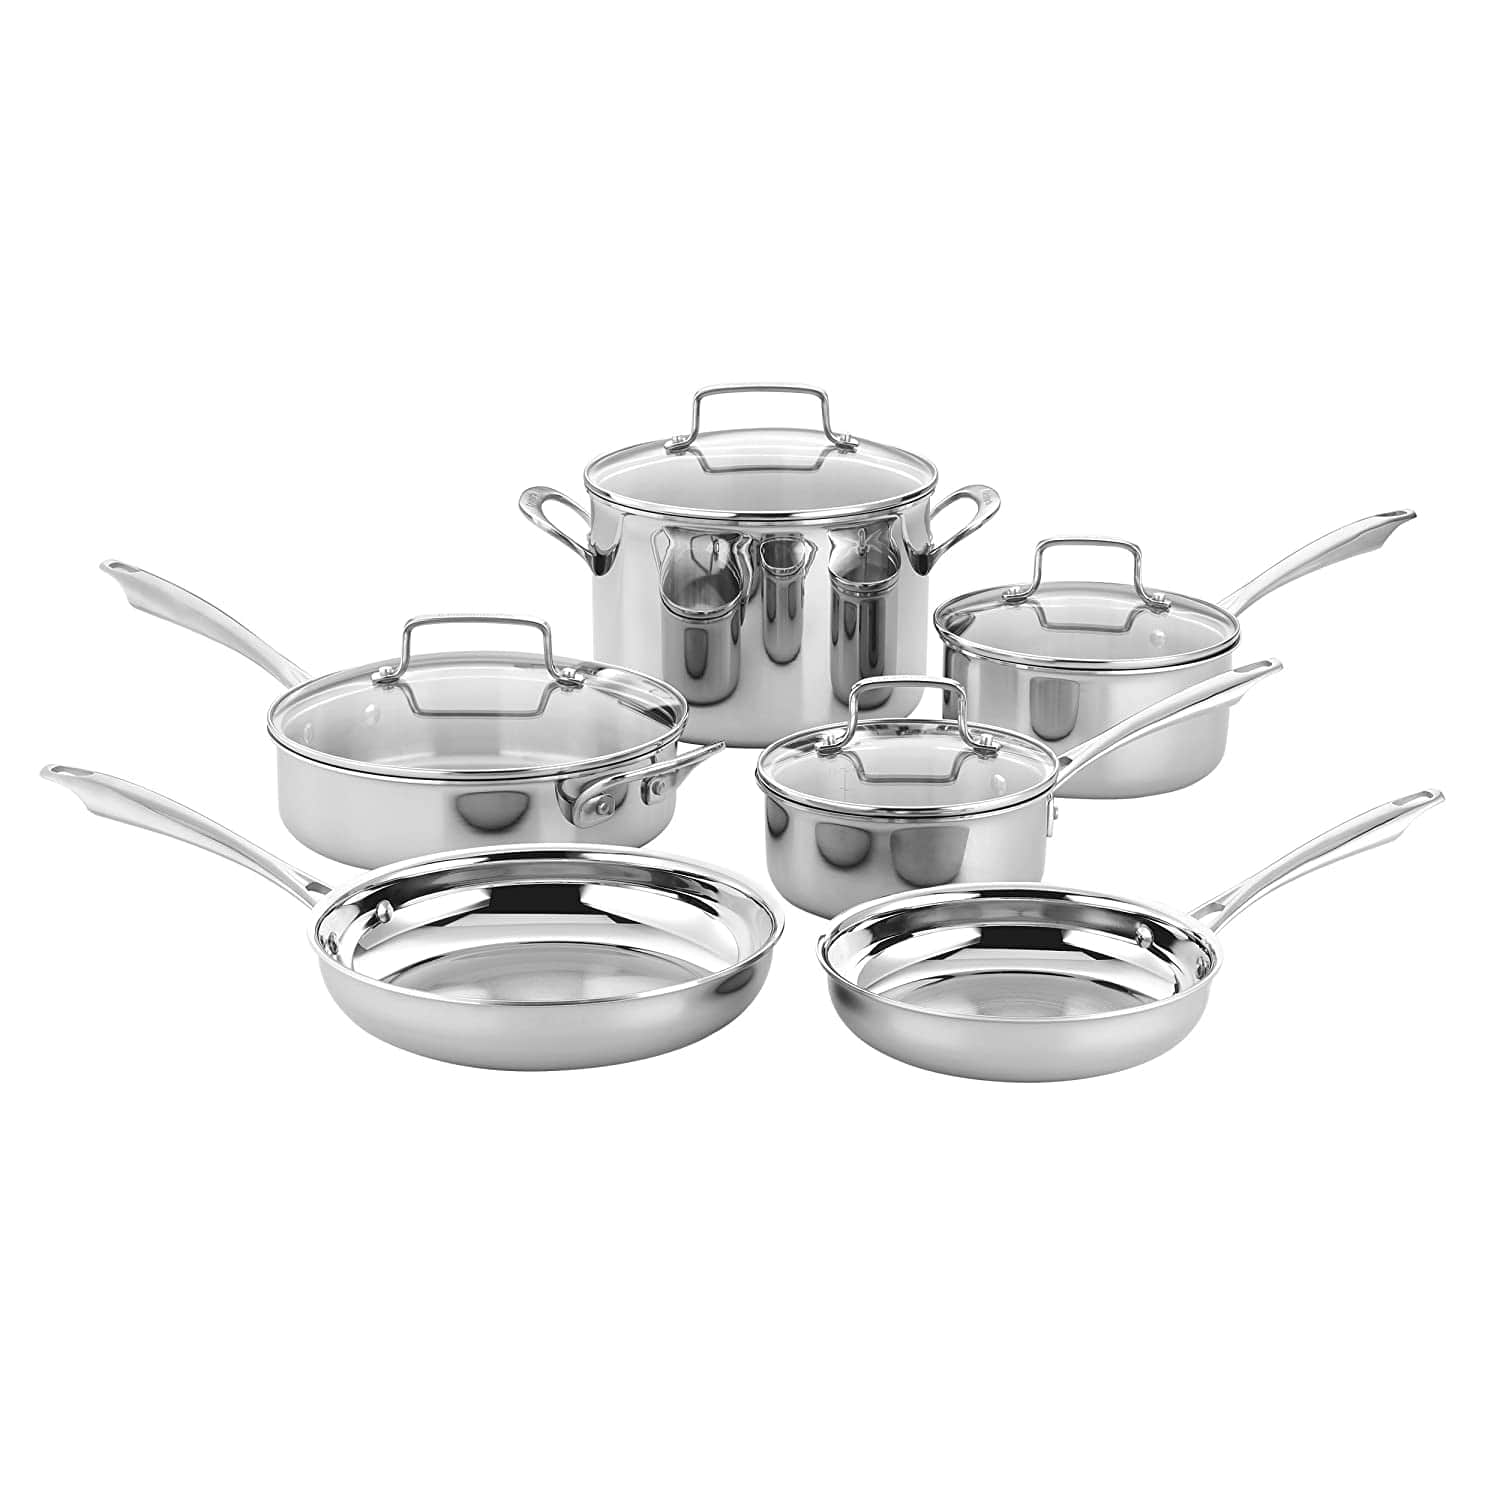 Cuisinart Tps 10 10 Piece Tri Ply Stainless Steel Cookware Set Pc Silver Prime Exclusive 124 99